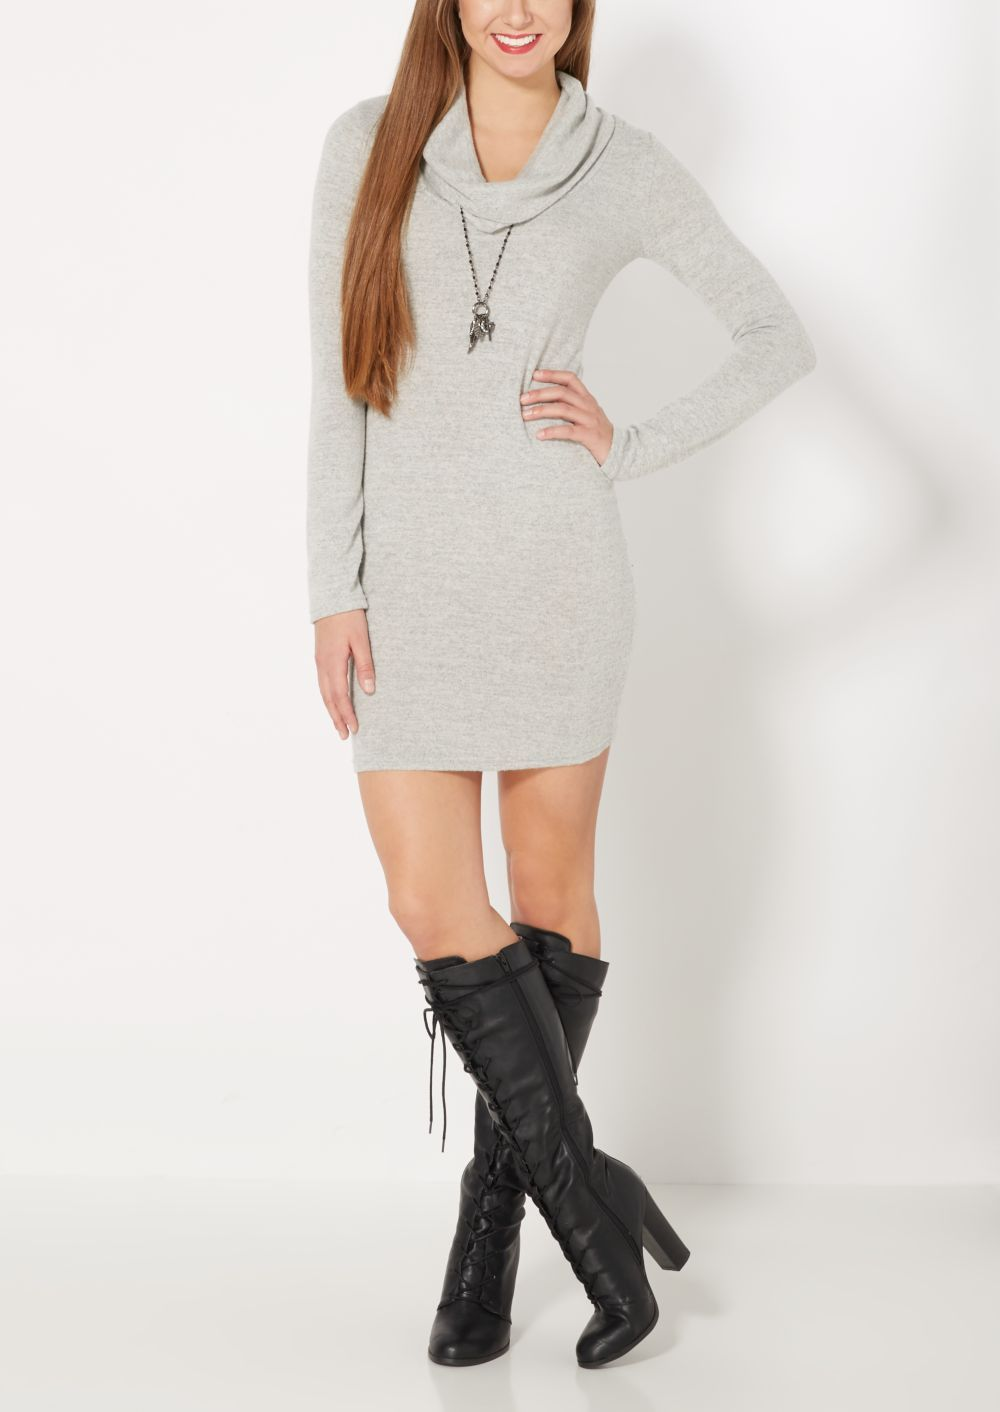 Heather Gray Cowl Neck Sweater Dress | Mini Dresses | rue21 ...